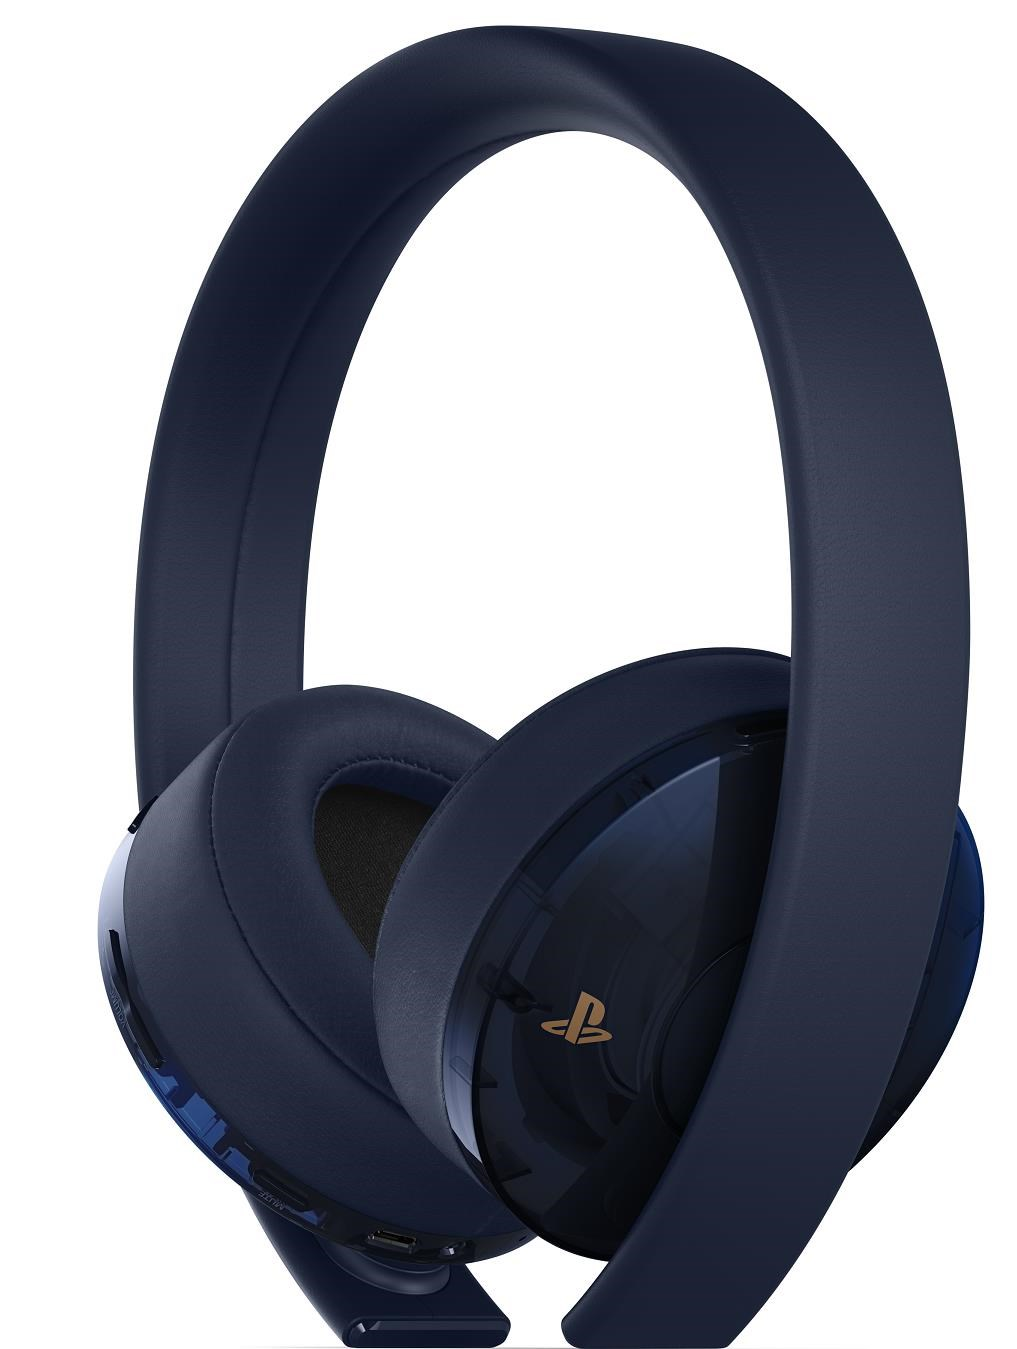 PS4 - Gold/Navy Blue Wireless Headset